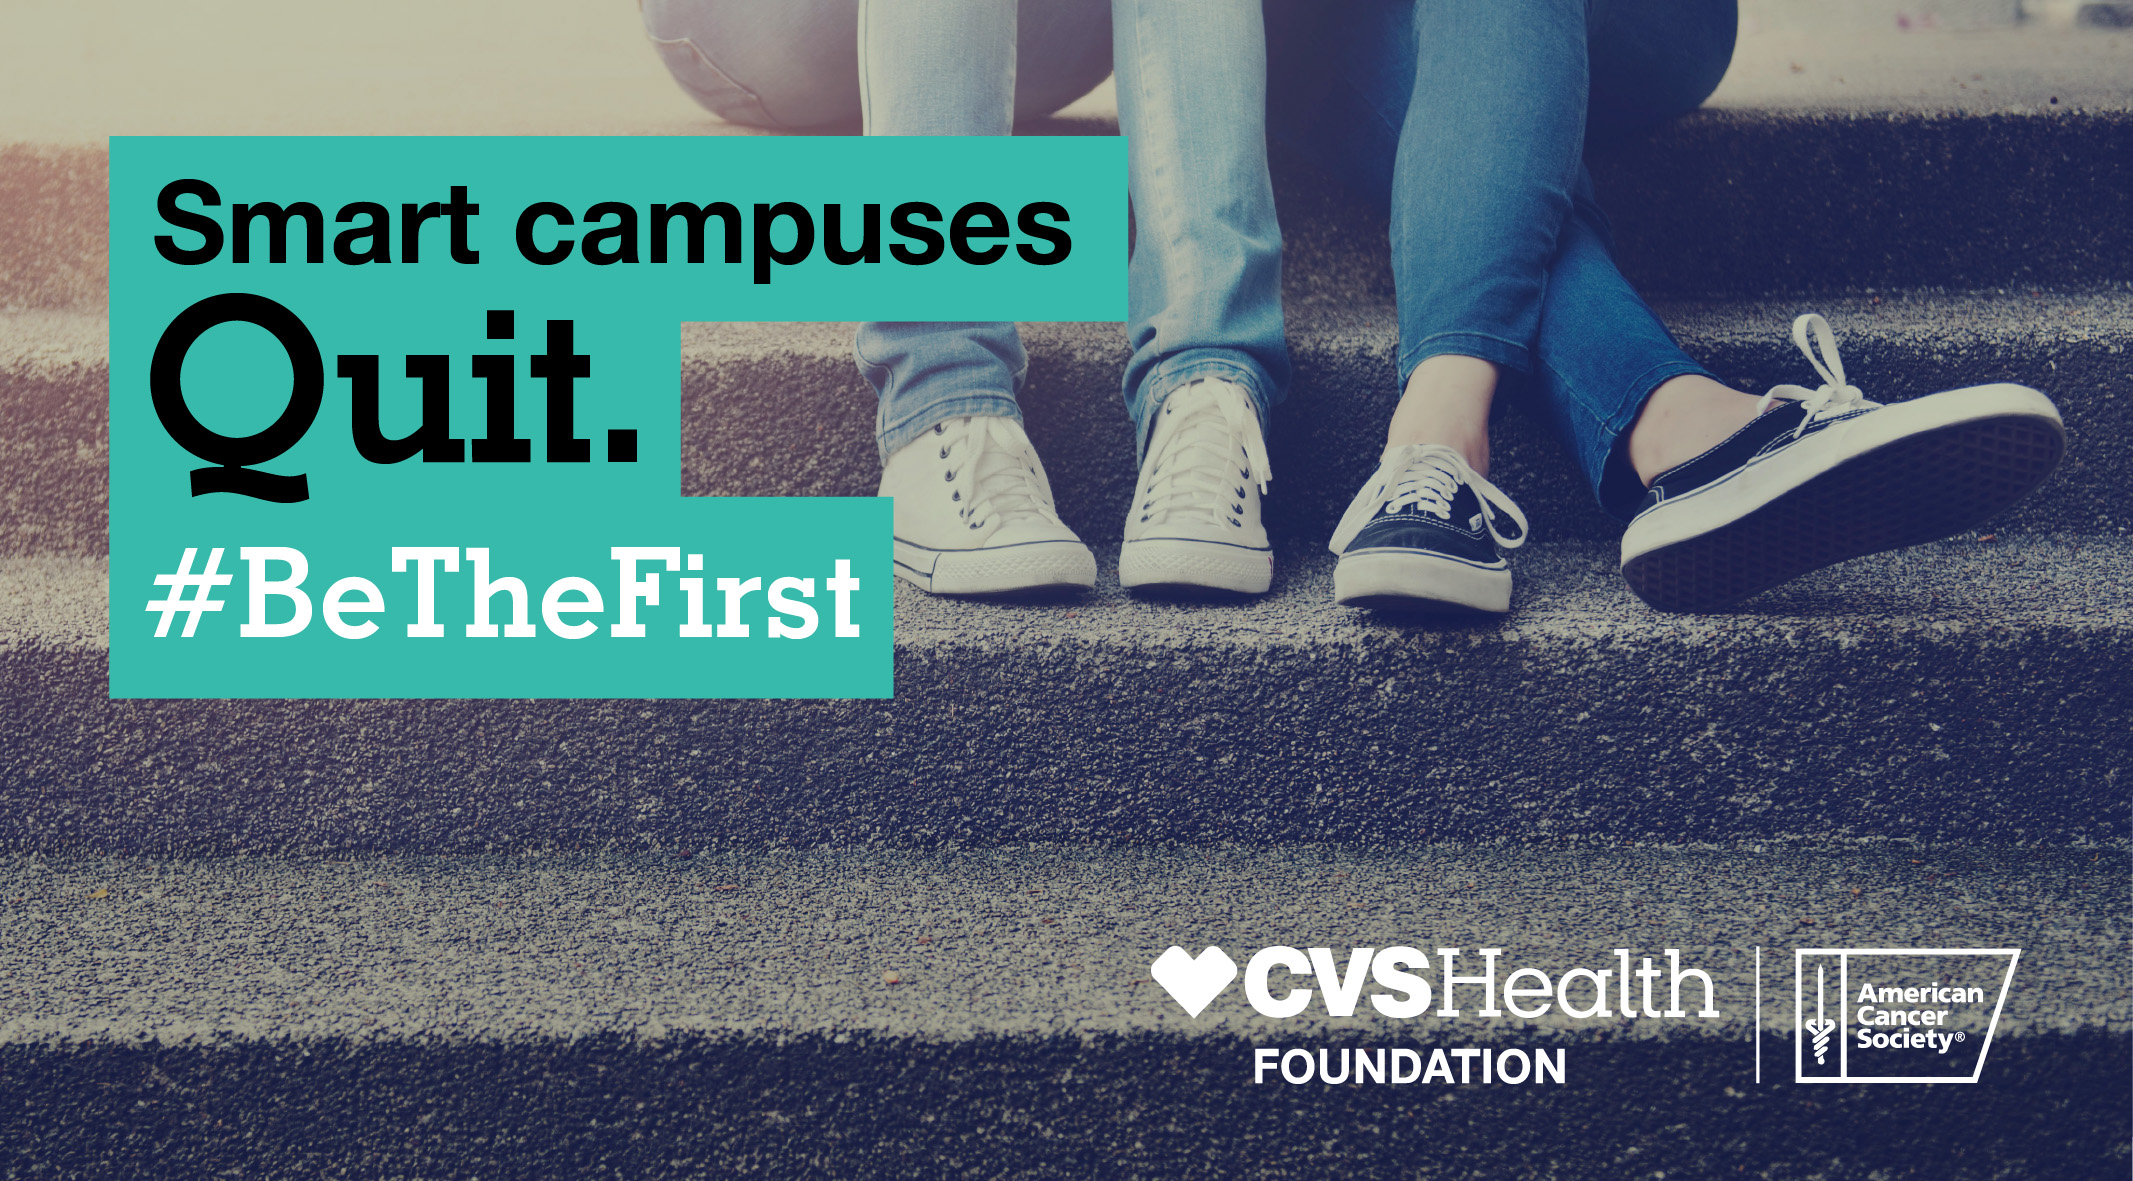 Smart campuses quit. #BeTheFirst